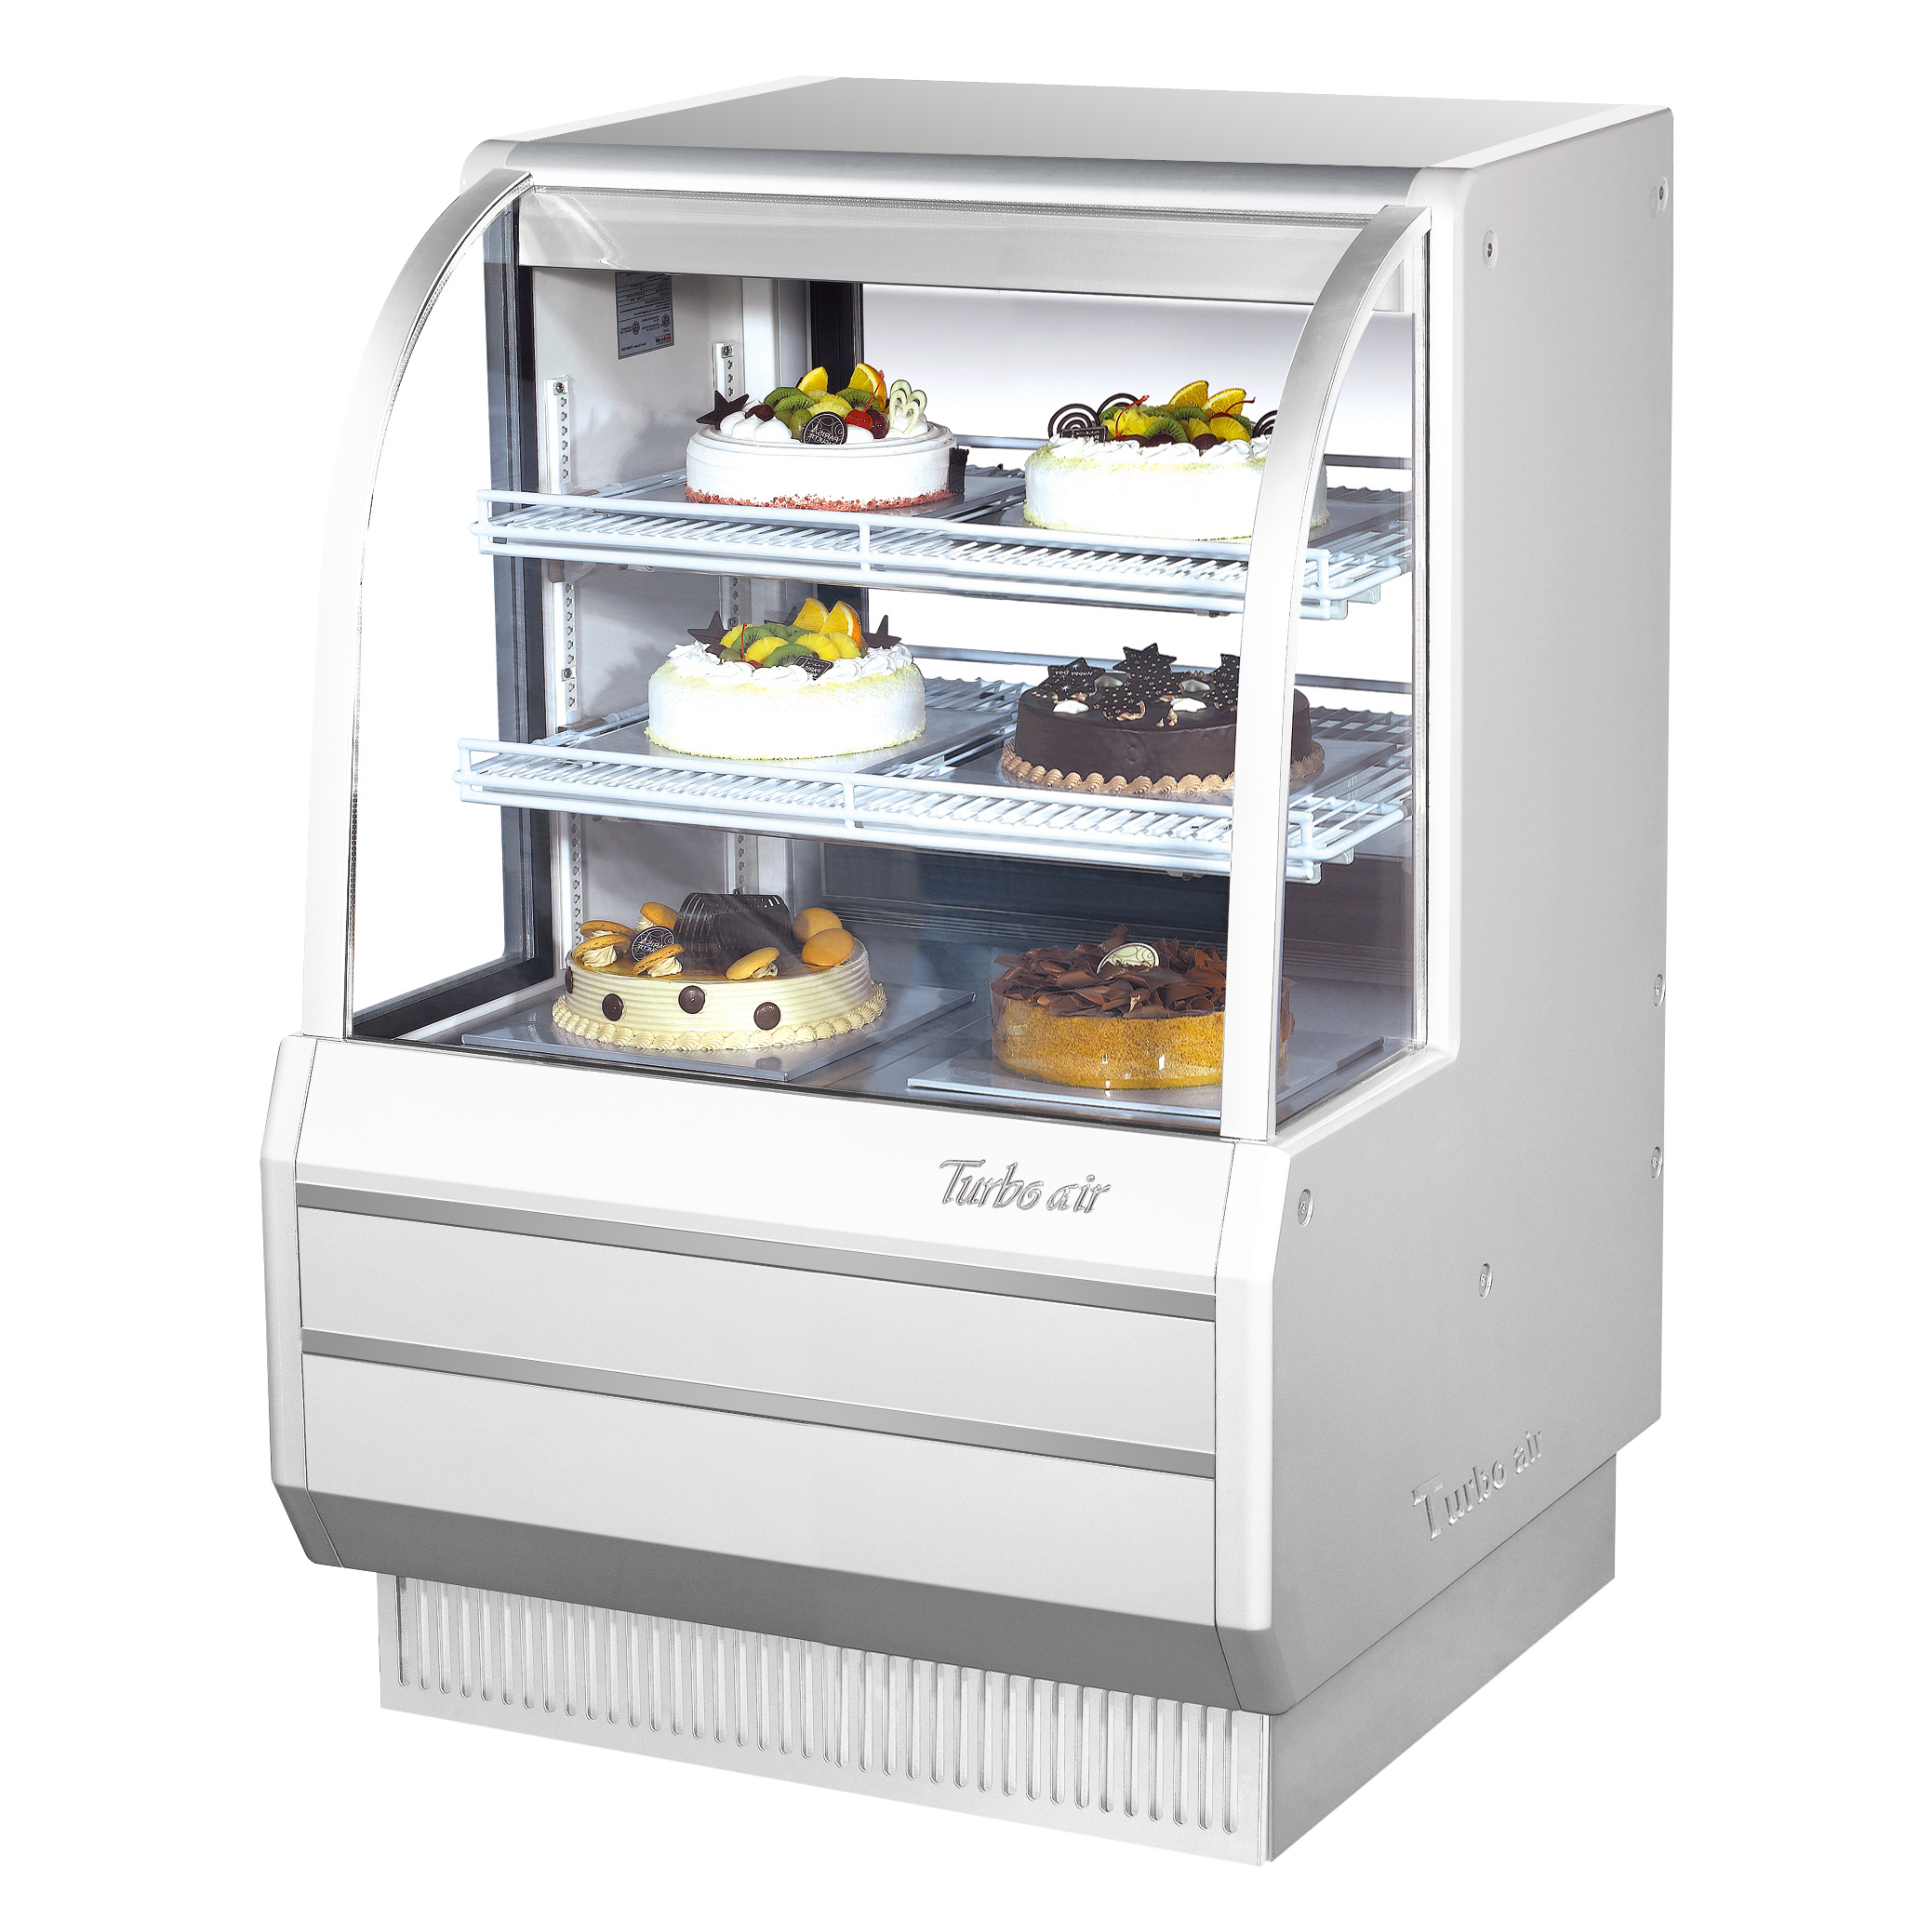 Turbo Air TCGB-36DR-W(B) display case, non-refrigerated bakery